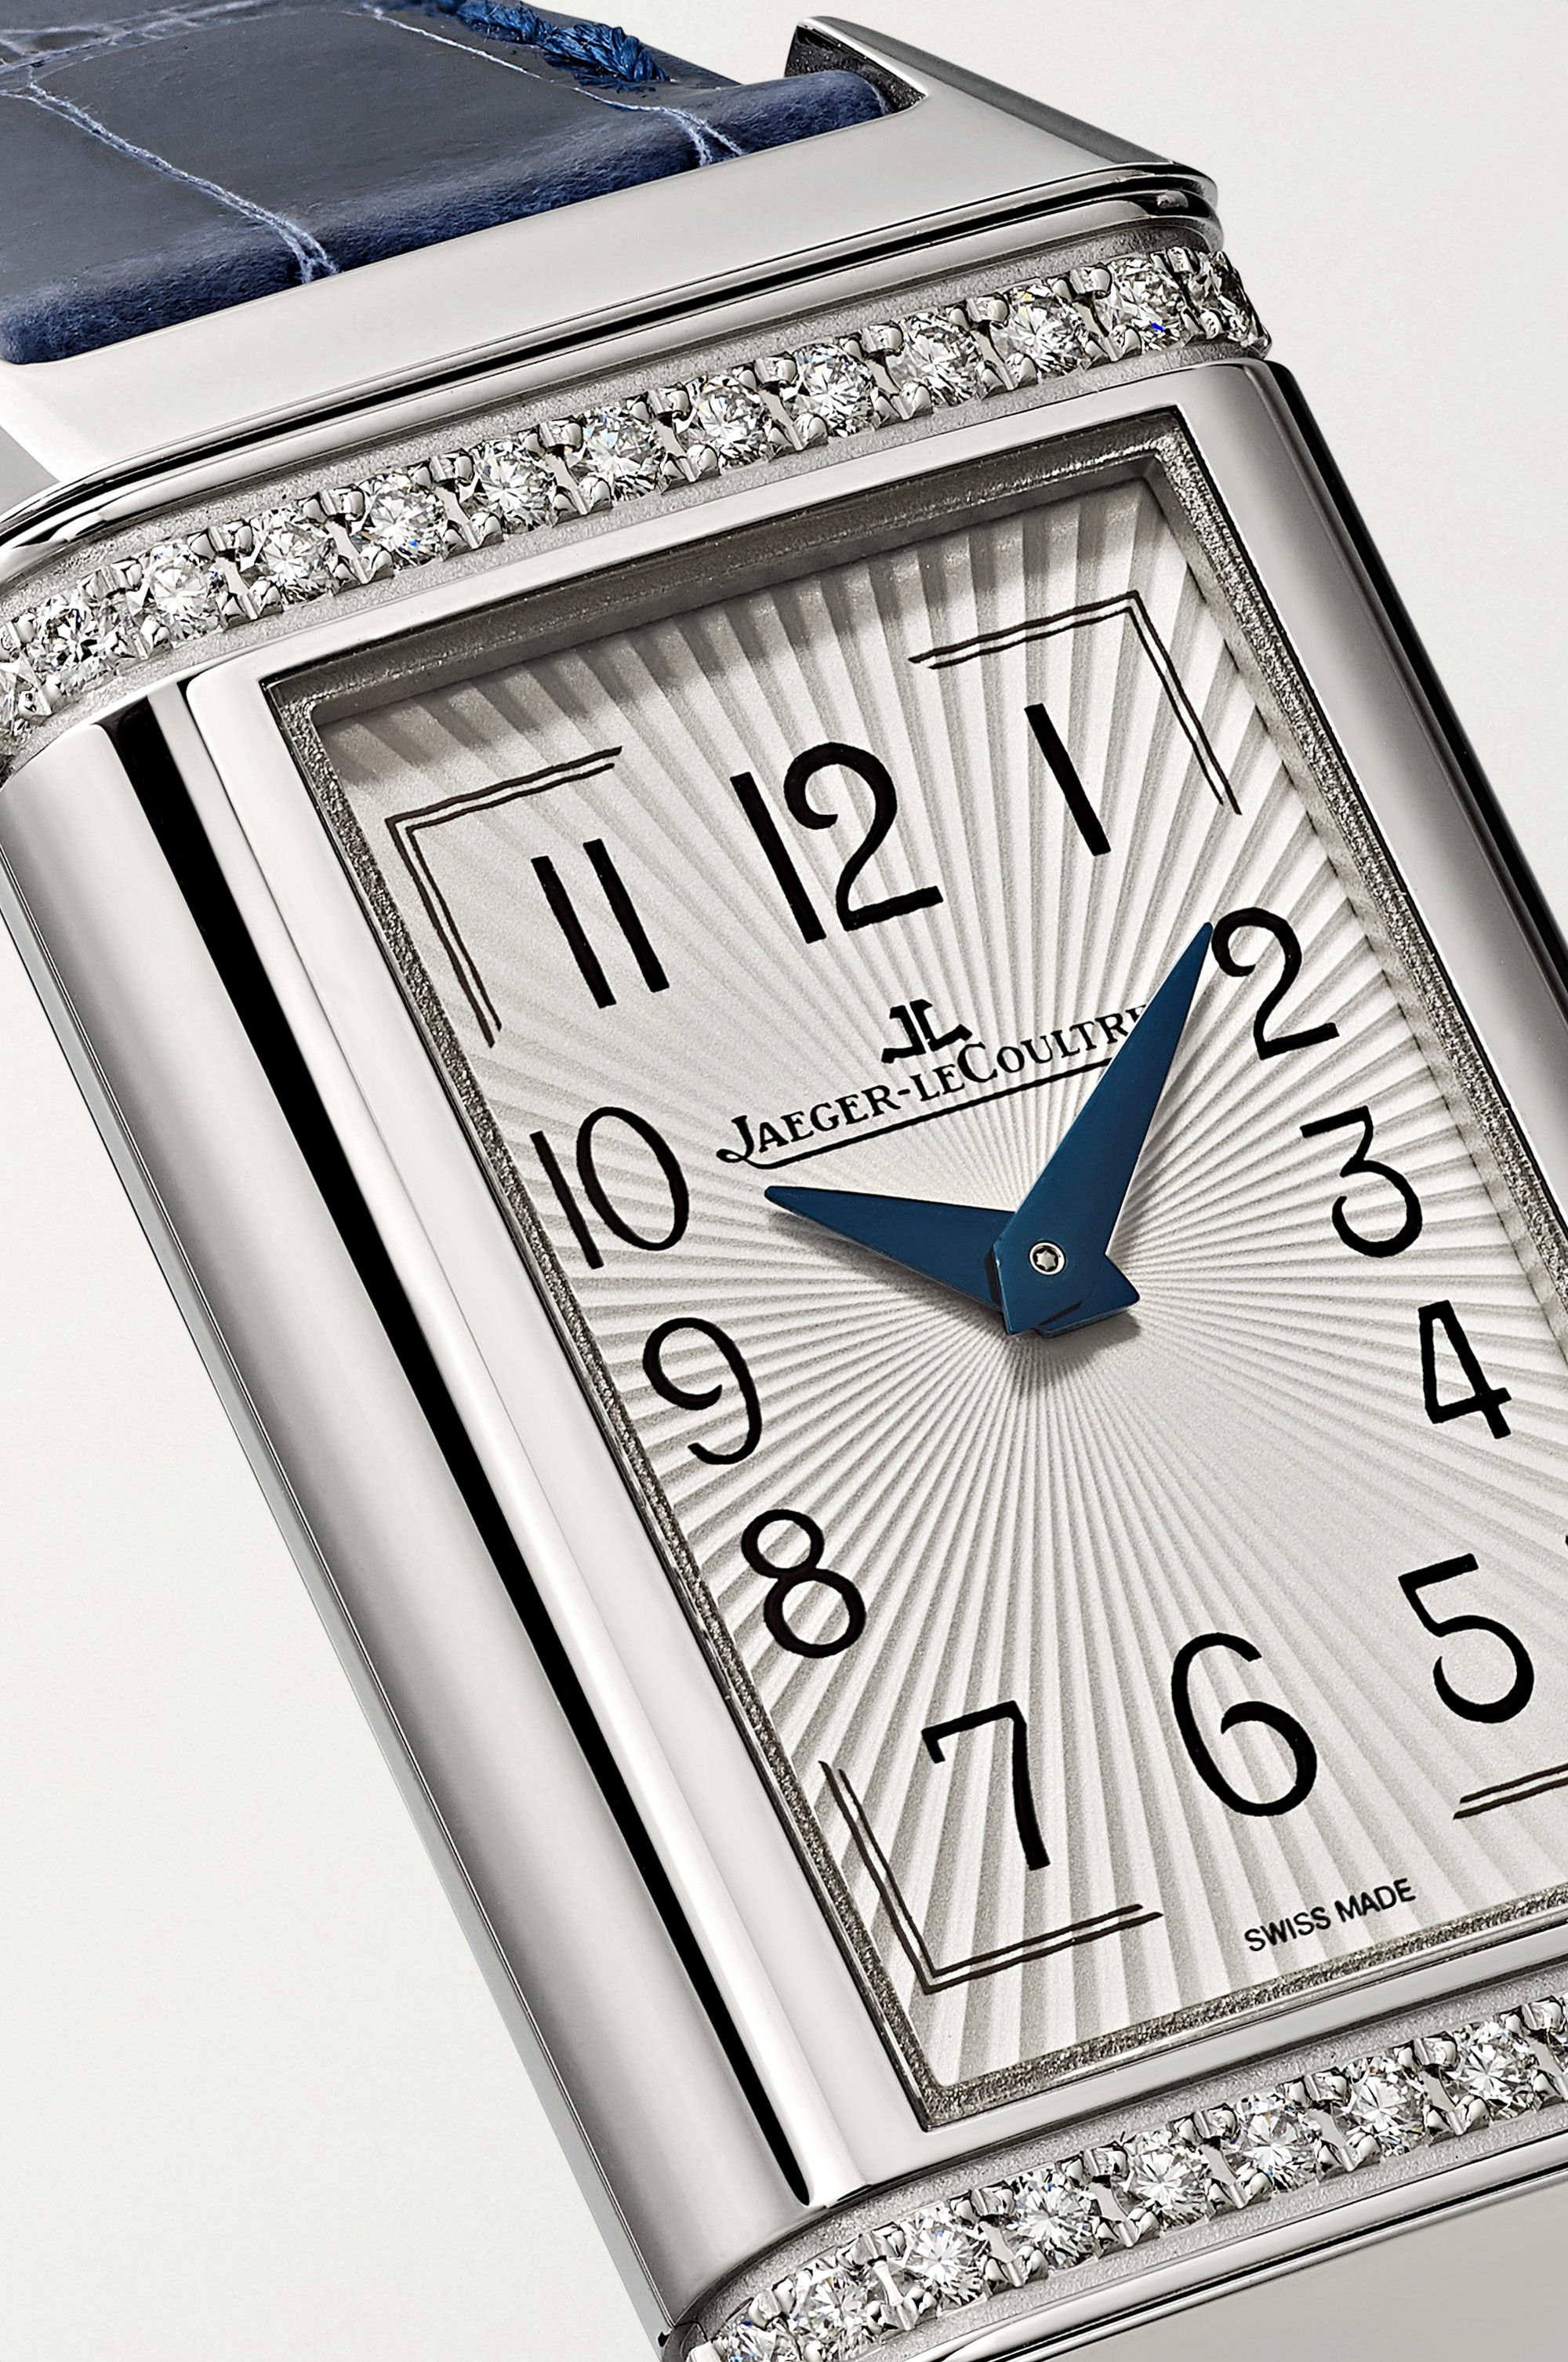 Jaeger-LeCoultre Reverso One Duetto 20 毫米钻石精钢腕表(短吻鳄鱼皮表带)